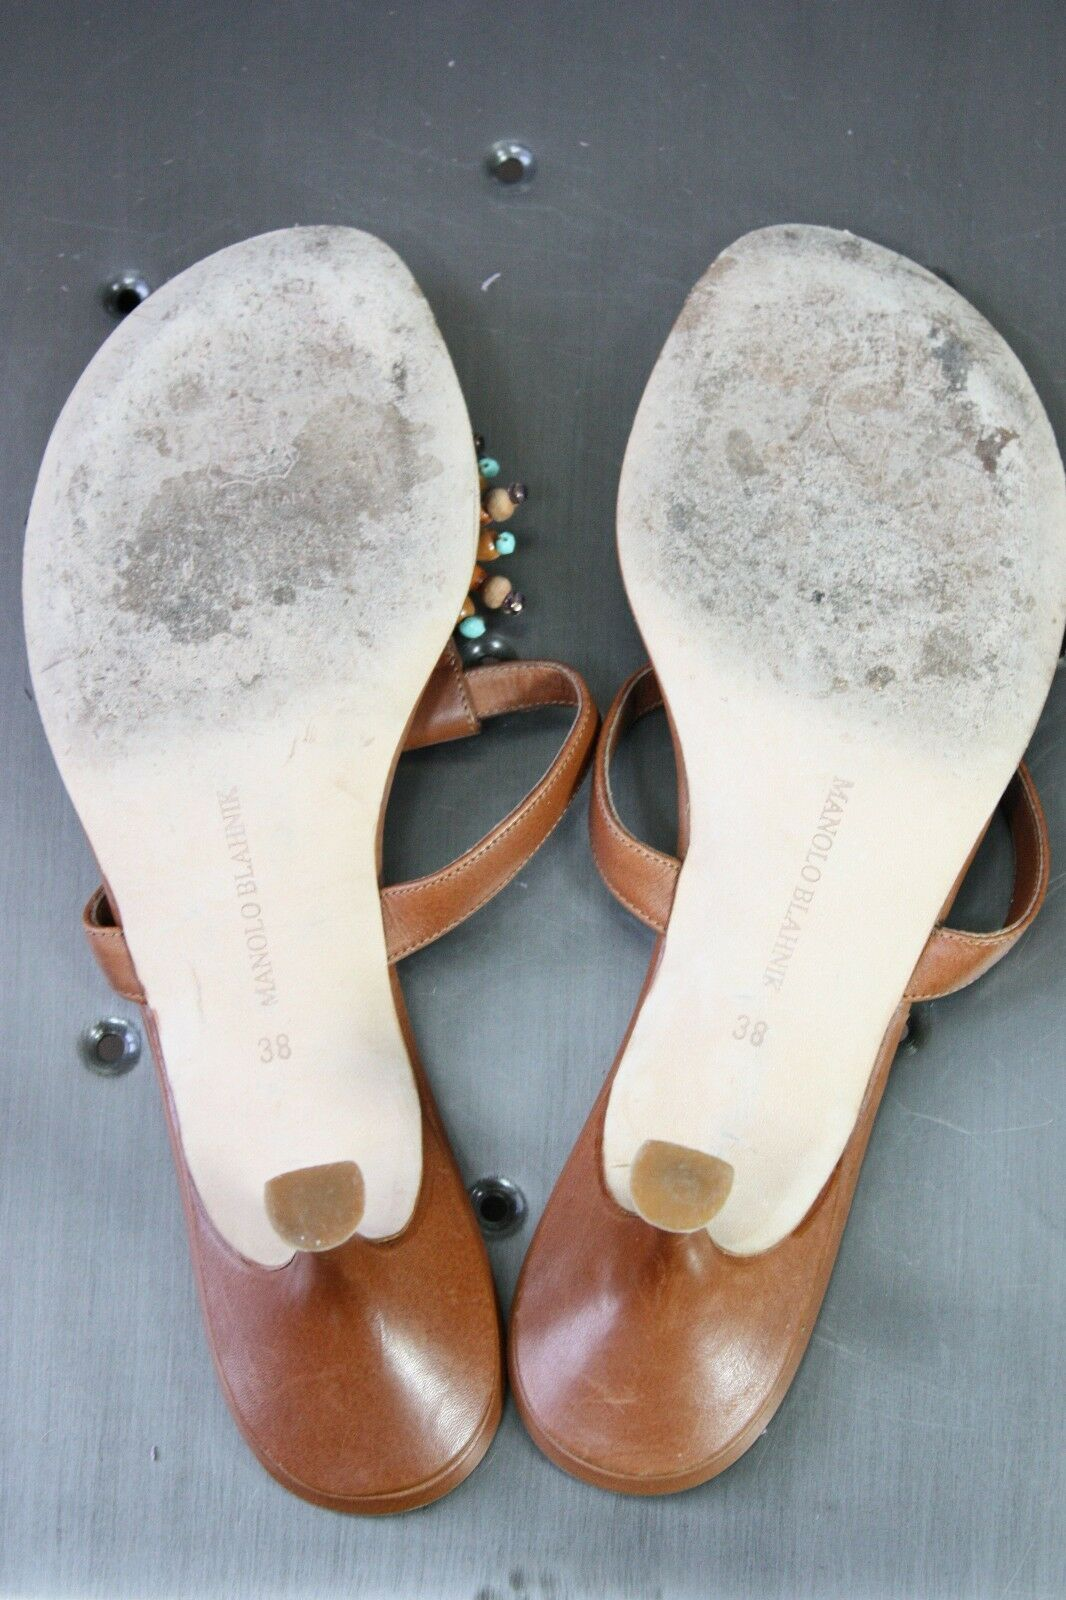 Manolo Blahnik thong sandals 38 8 pelle pelle pelle mint kitten heels beaded slides cd1e45